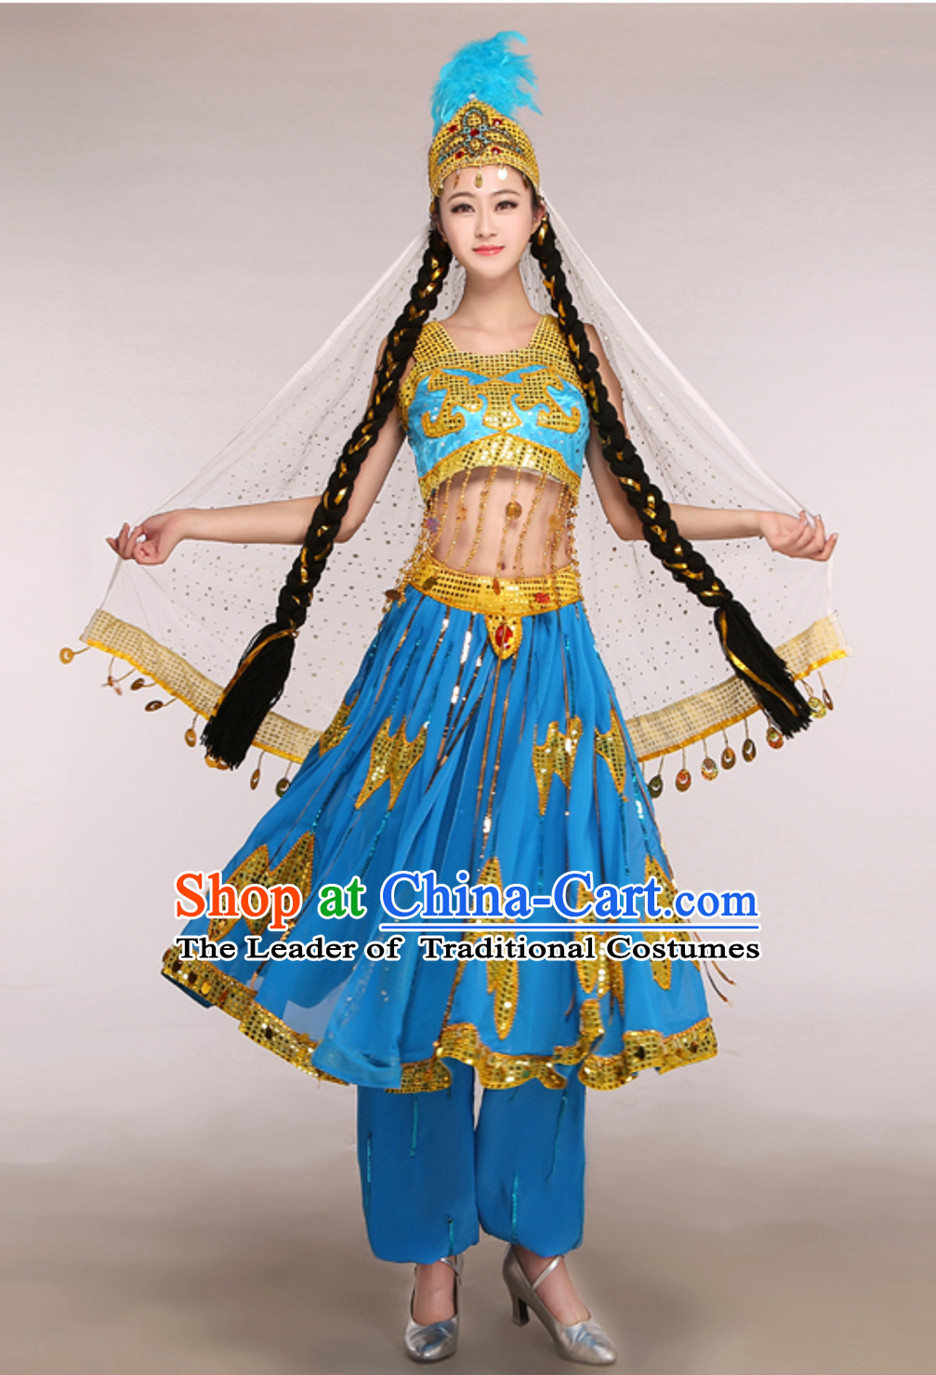 Blue Traditional Xinjiang Folk Dance Costumes for Adults Chinese Minority Ethnic Dance Outfits